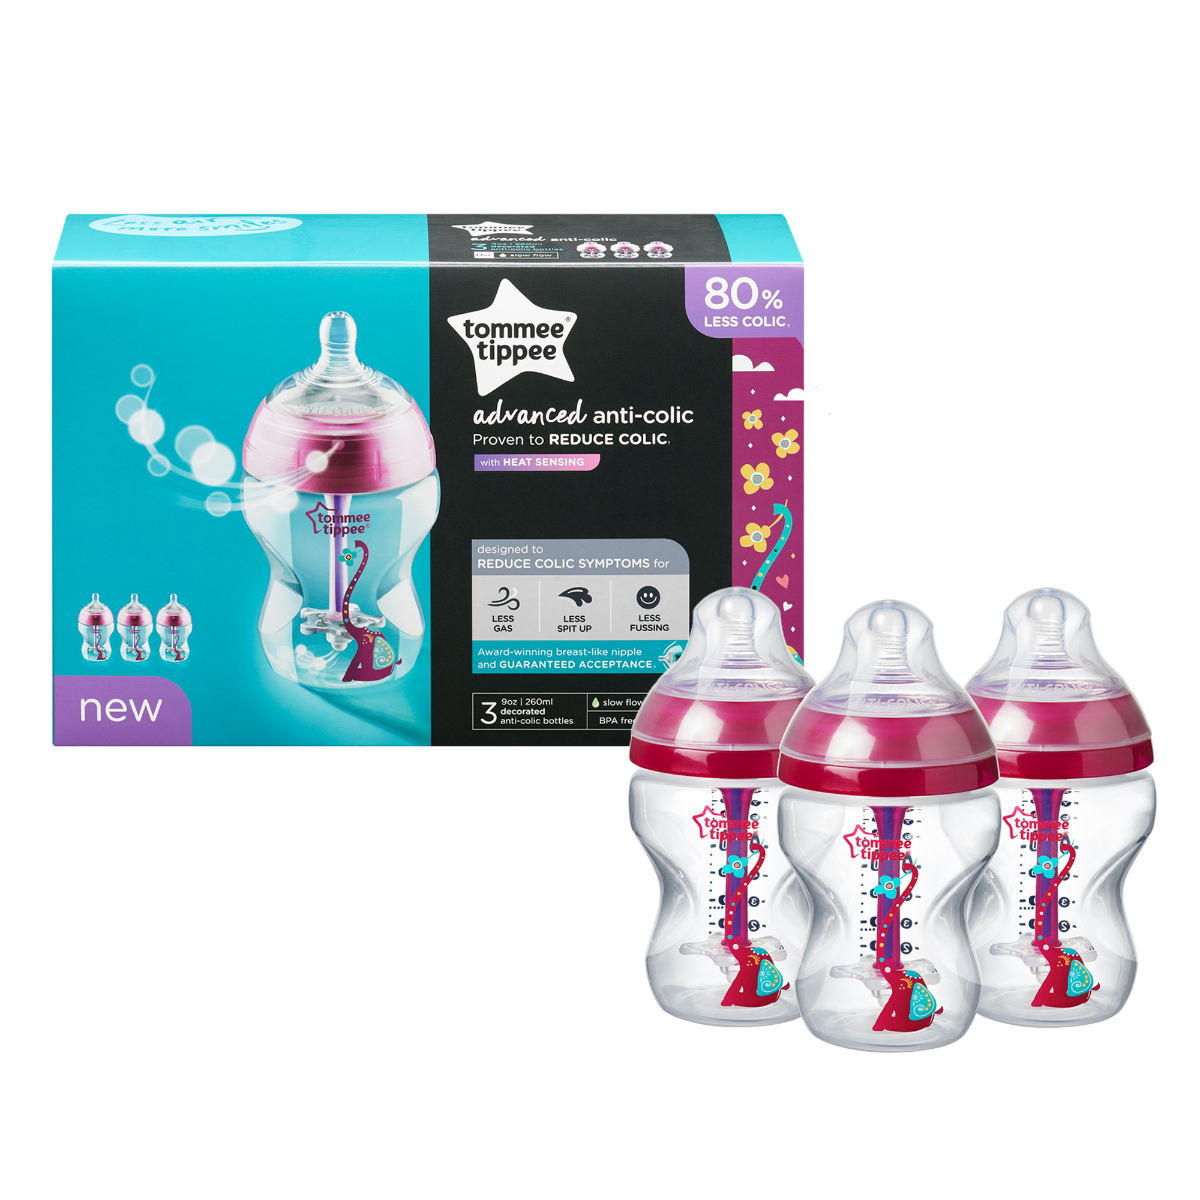 3-x-9-oz-advanced-anti-colic-baby-bottles-with-red-elephant-design-with-packaging-behind